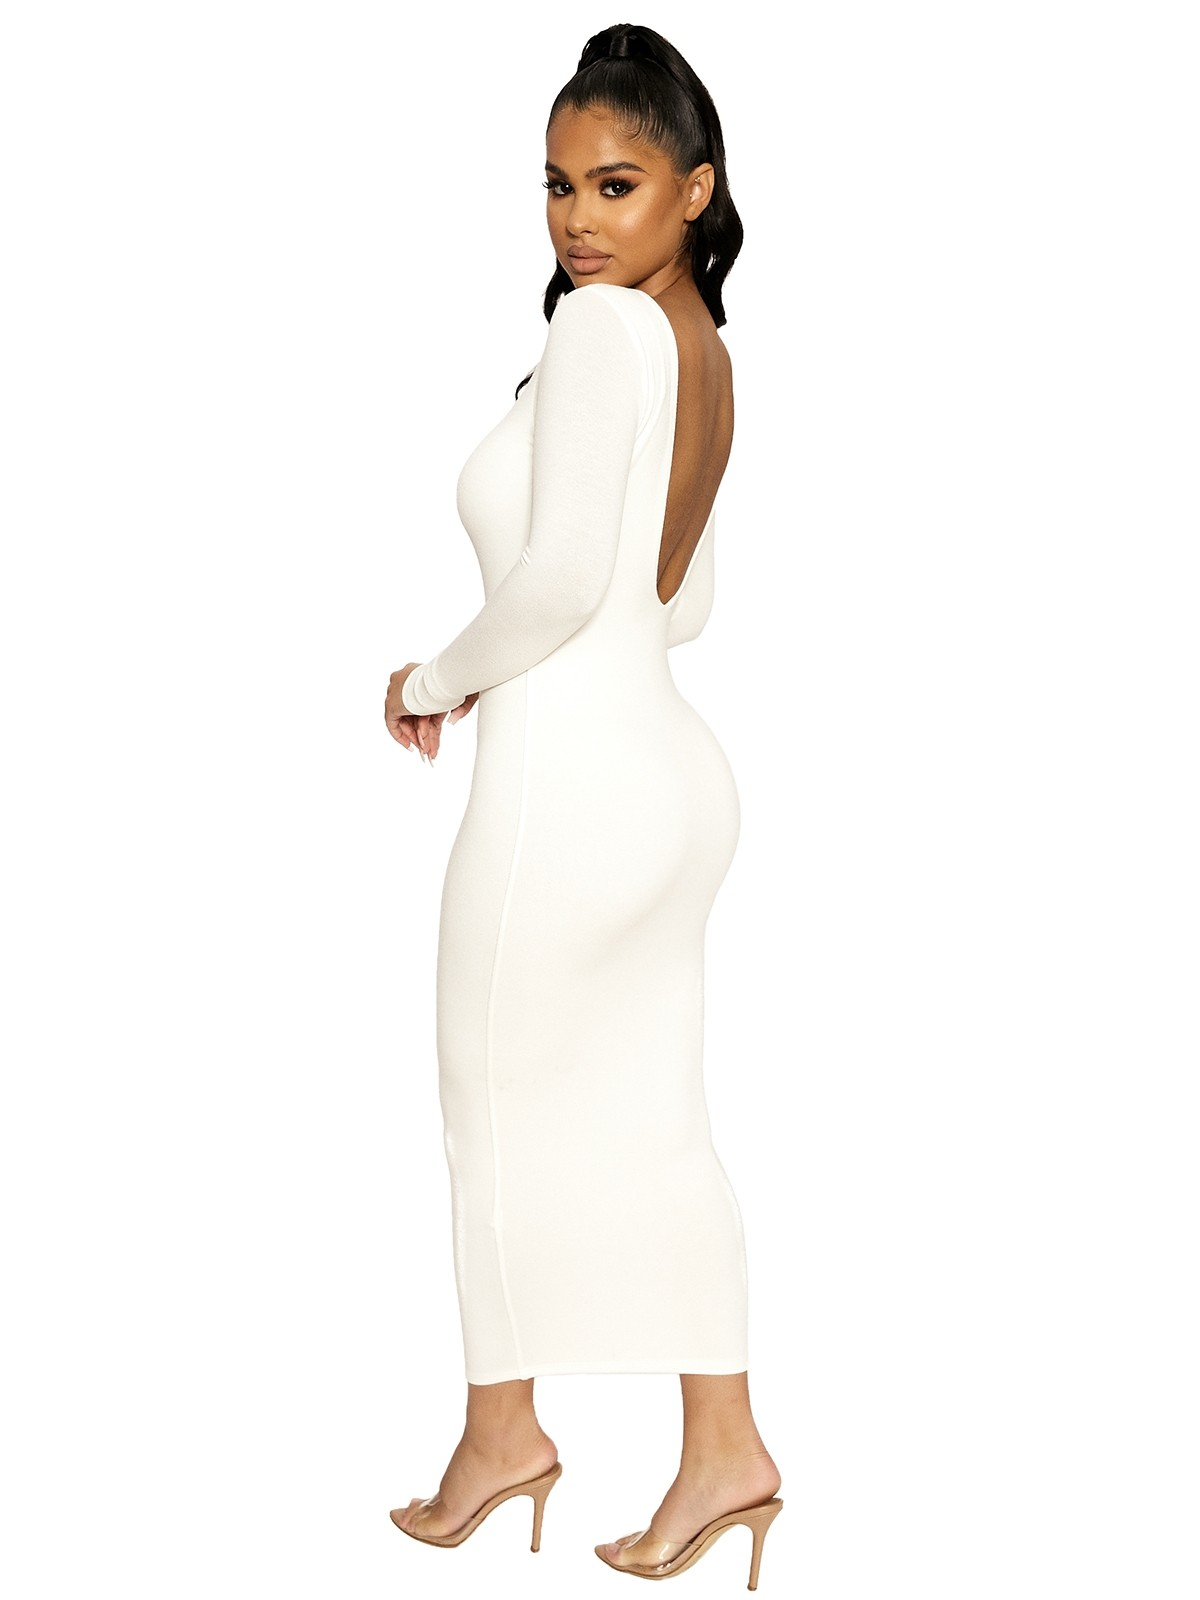 The NW Timeless Dress by Naked Wardrobe, available on nakedwardrobe.com for $54 Kylie Jenner Dress SIMILAR PRODUCT